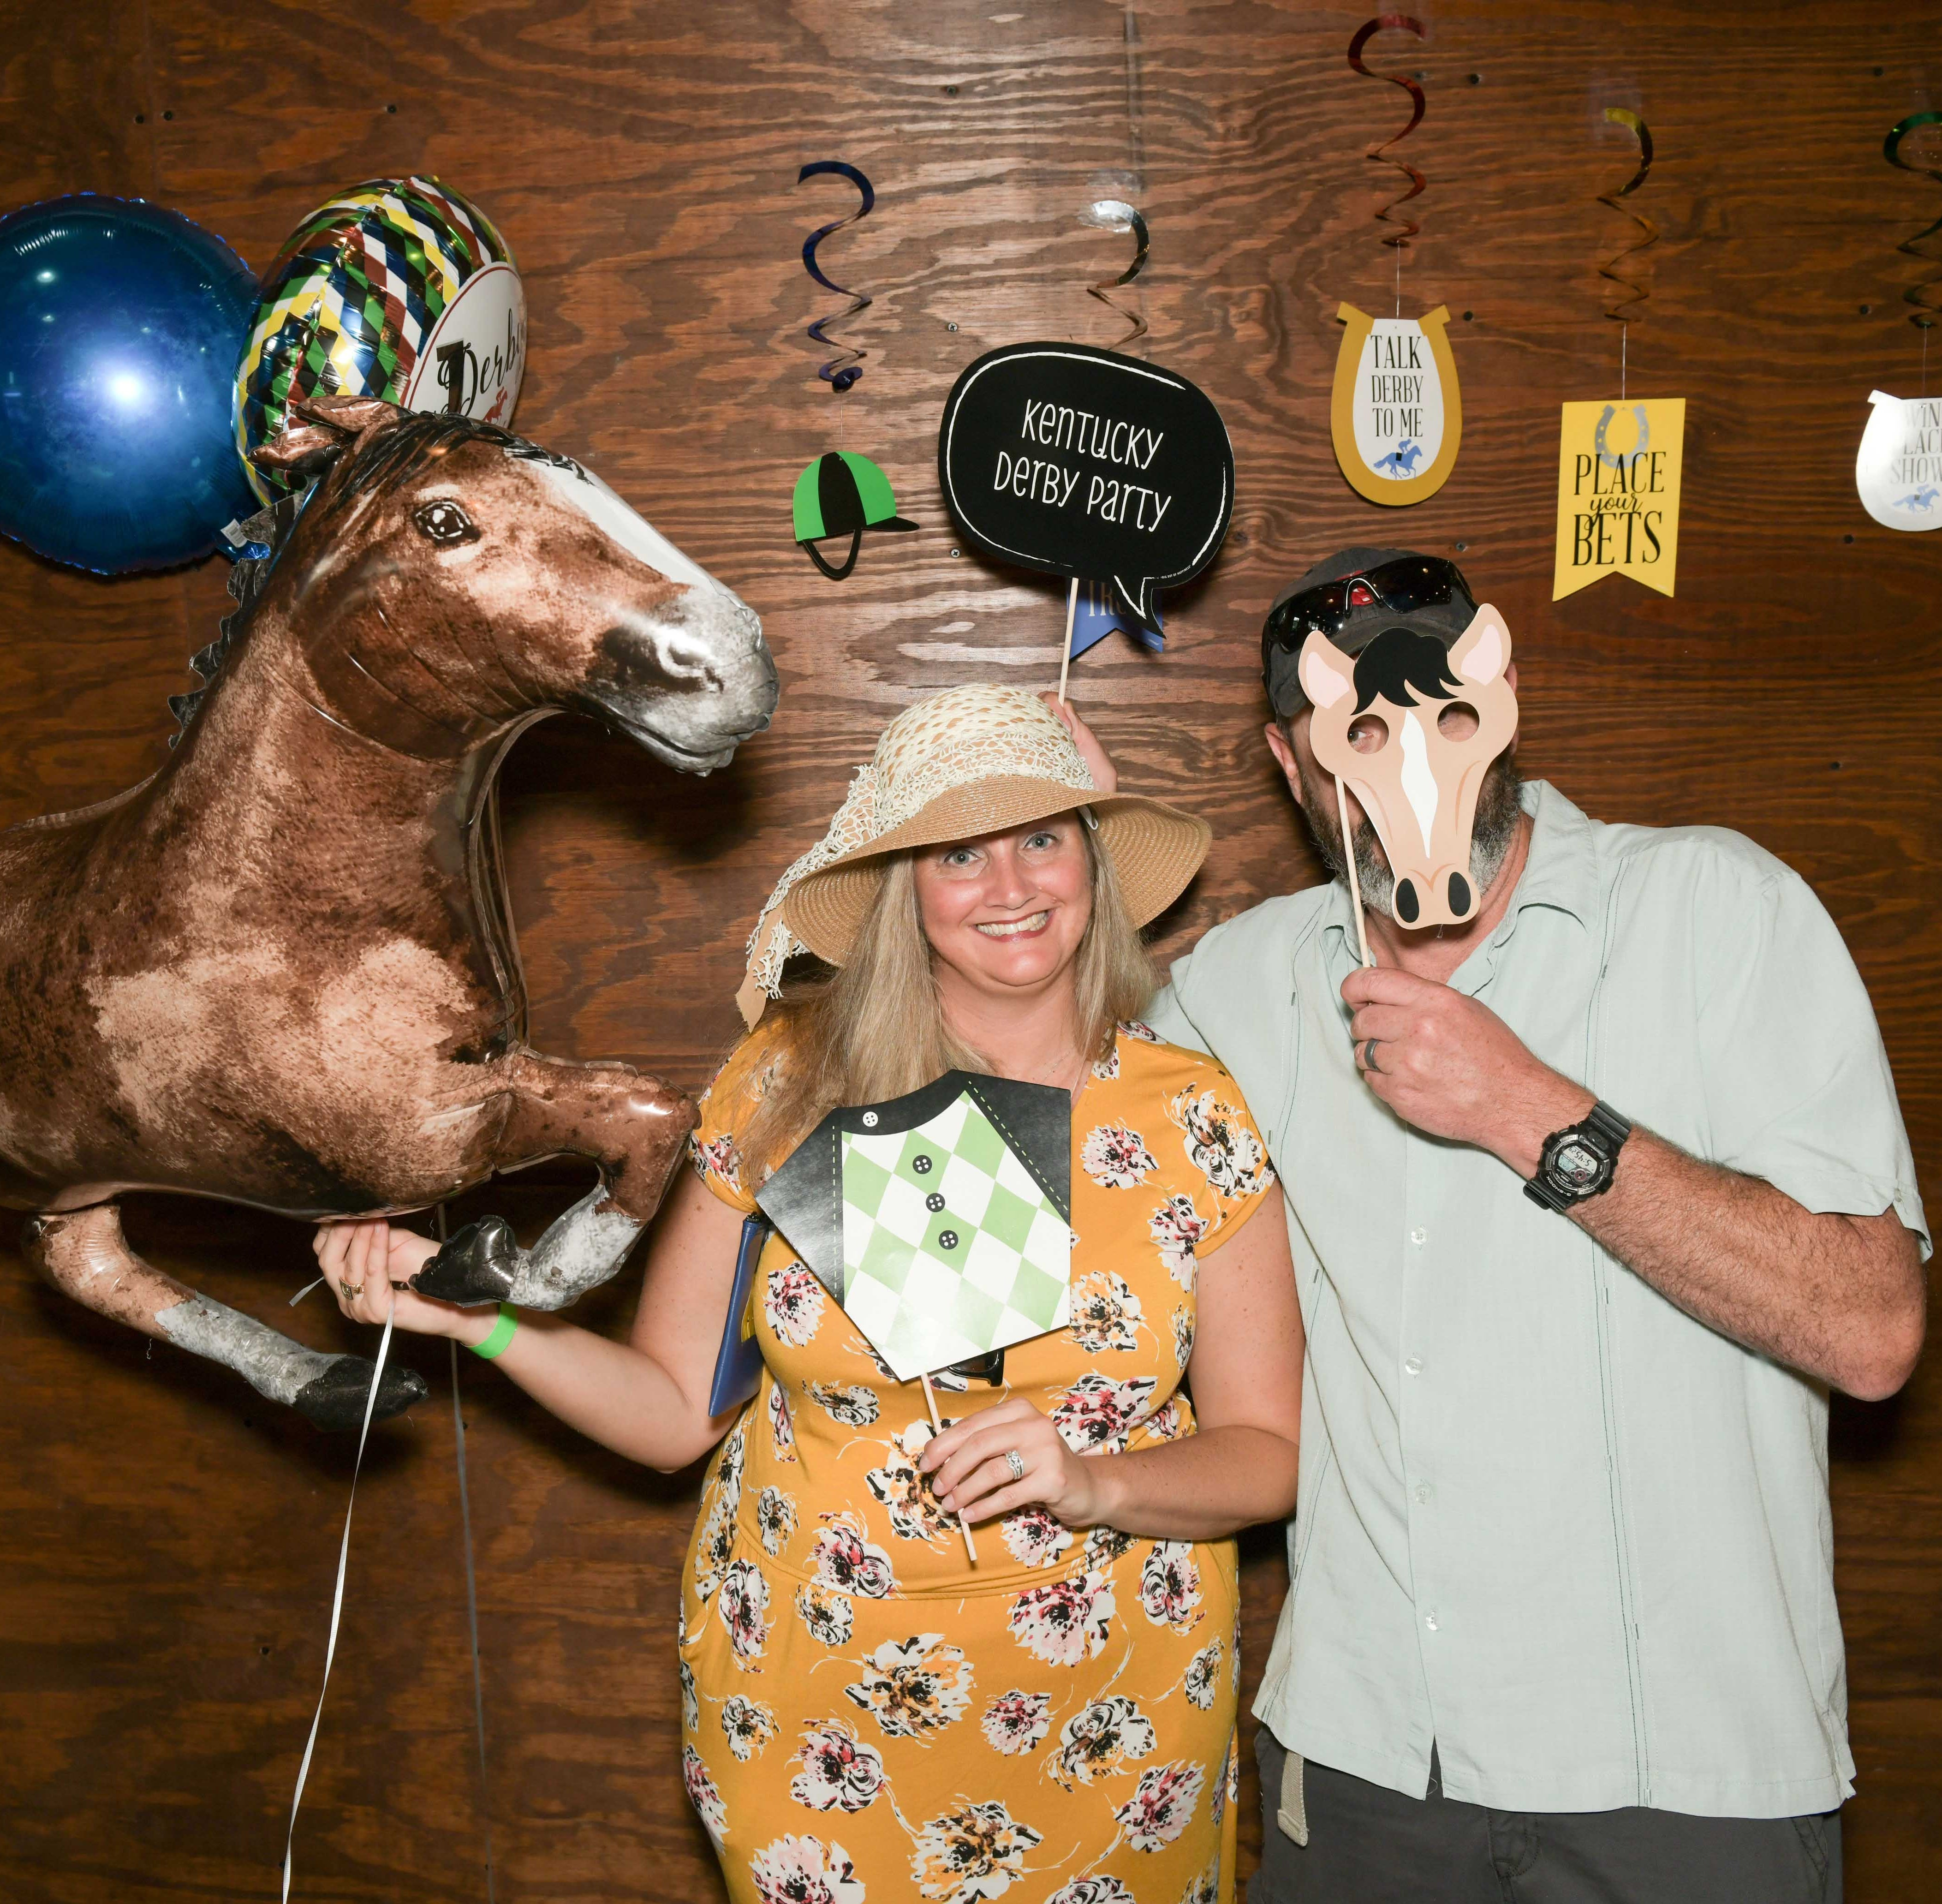 Royal Palms enjoy horsing around at Kentucky Derby-themed fundraiser in Vero Beach